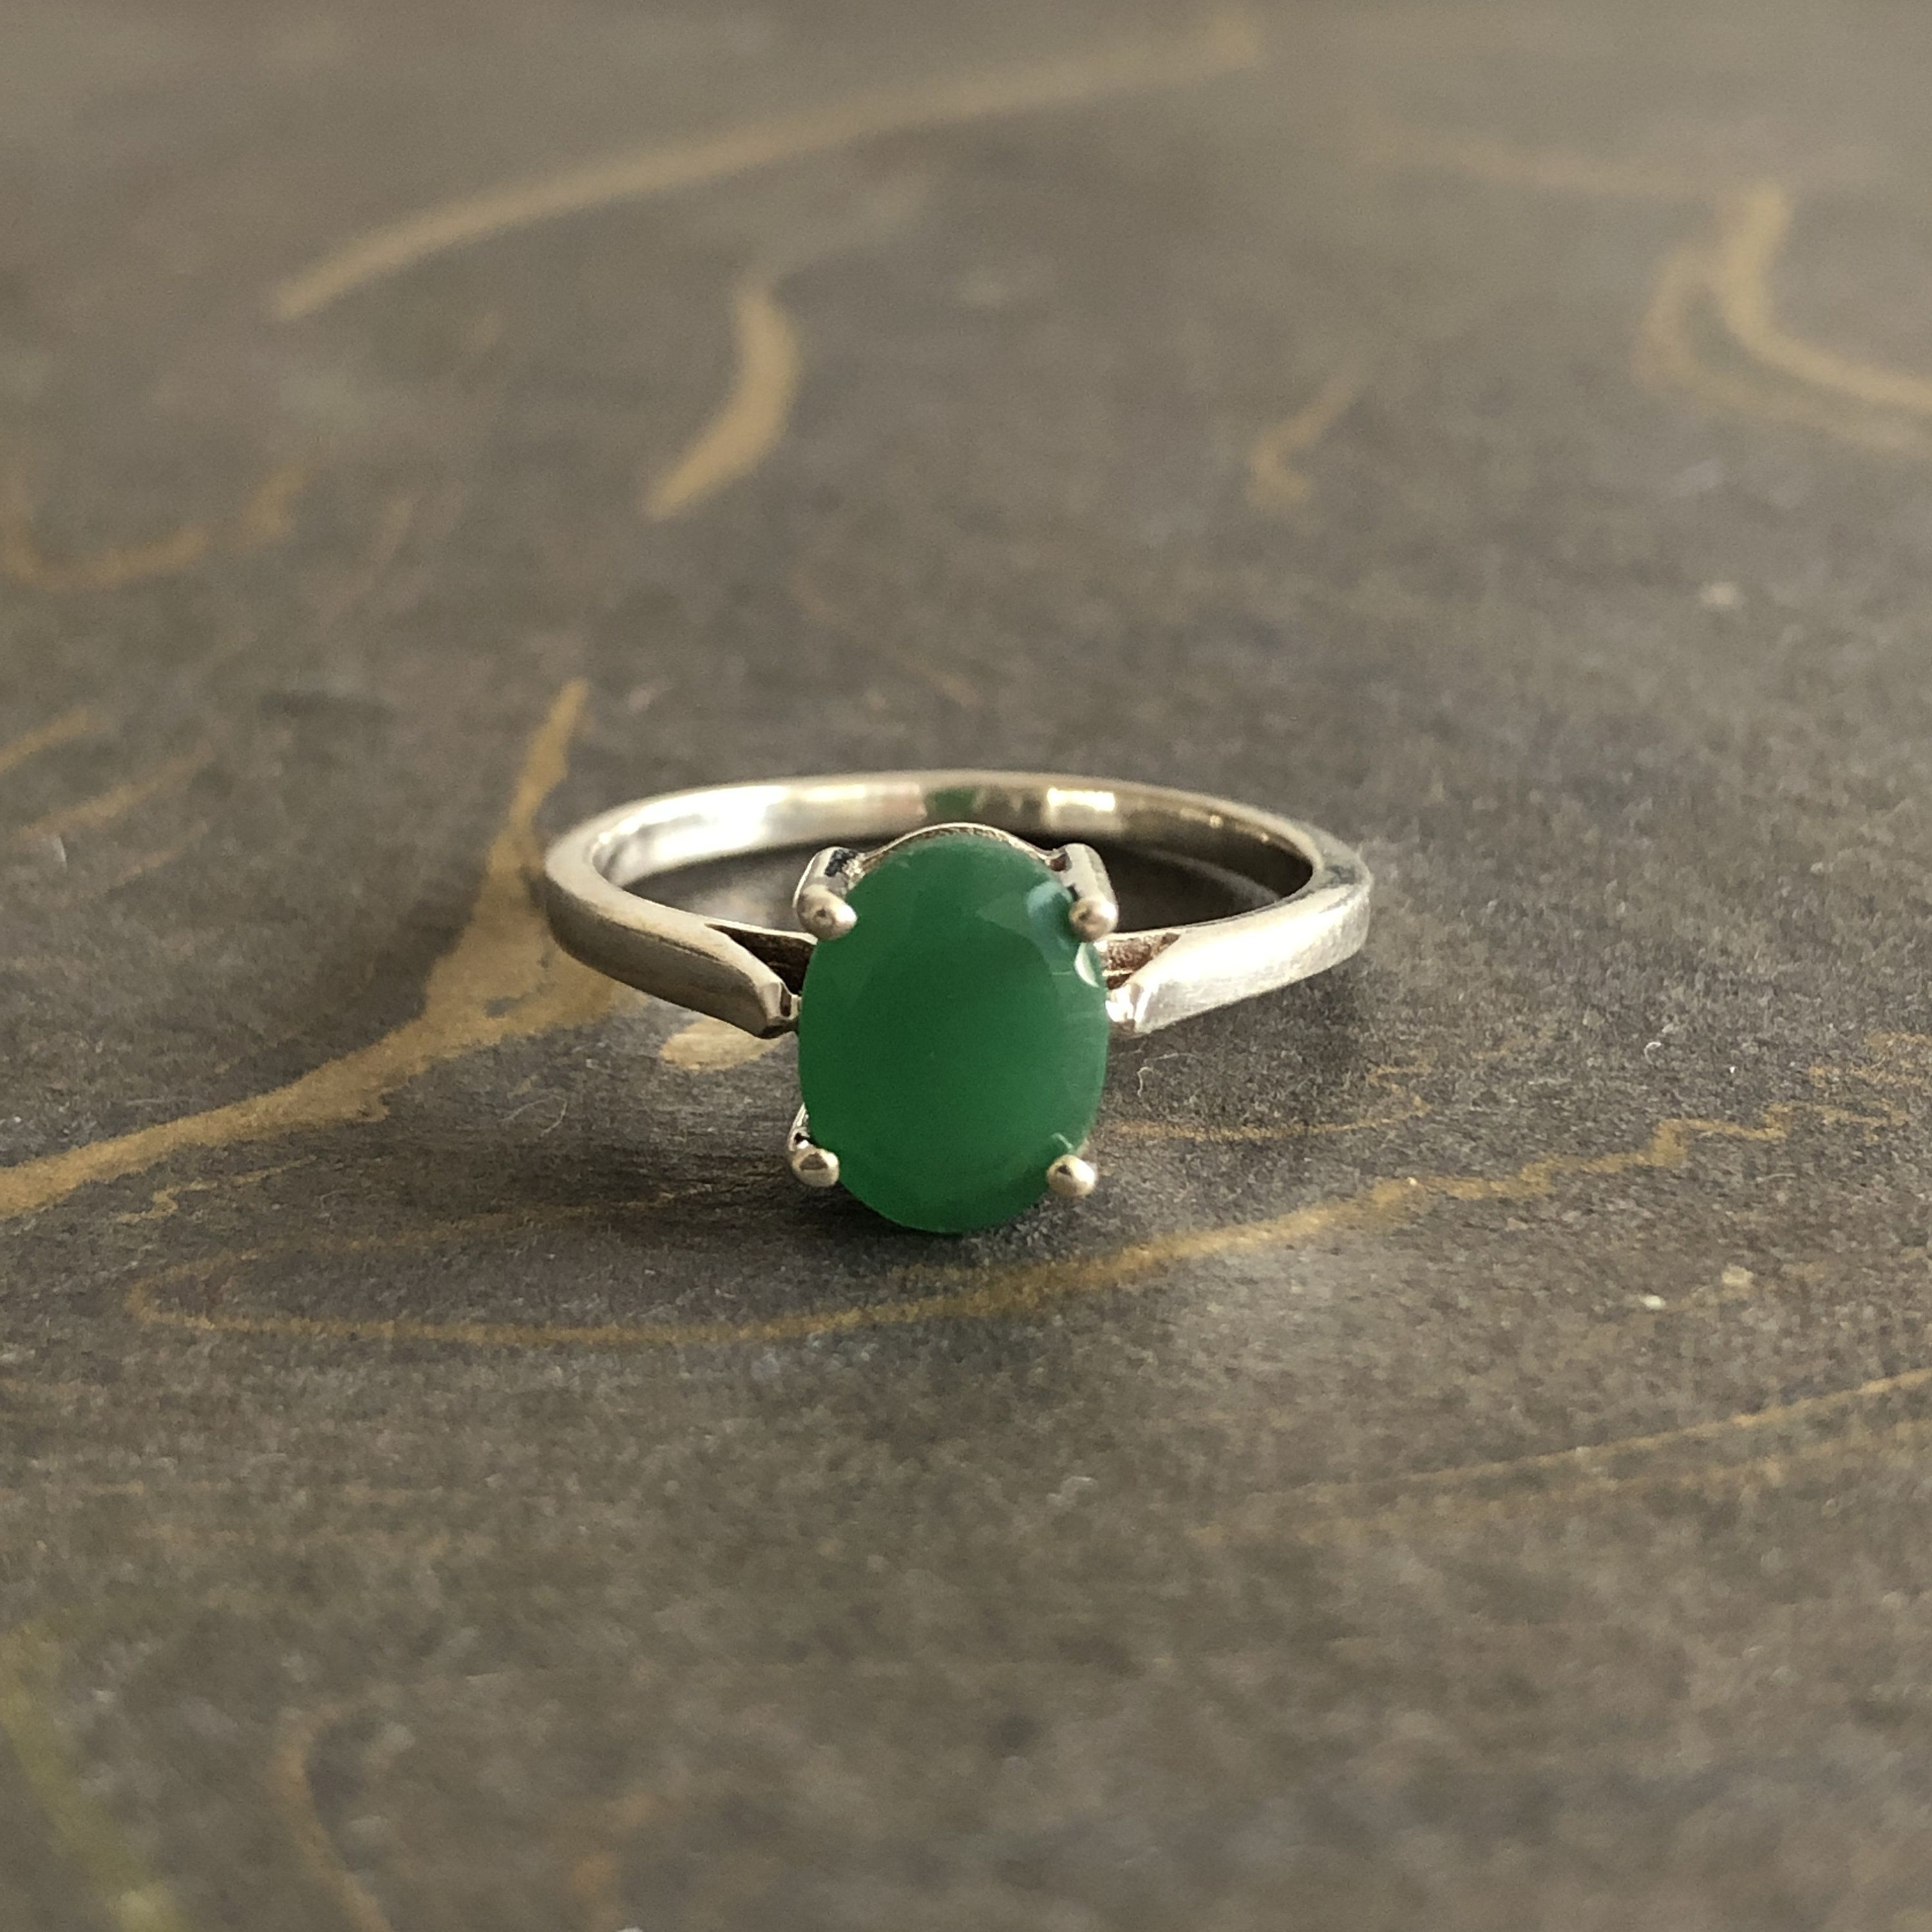 Handmade Silver Ring With Emerald Stone